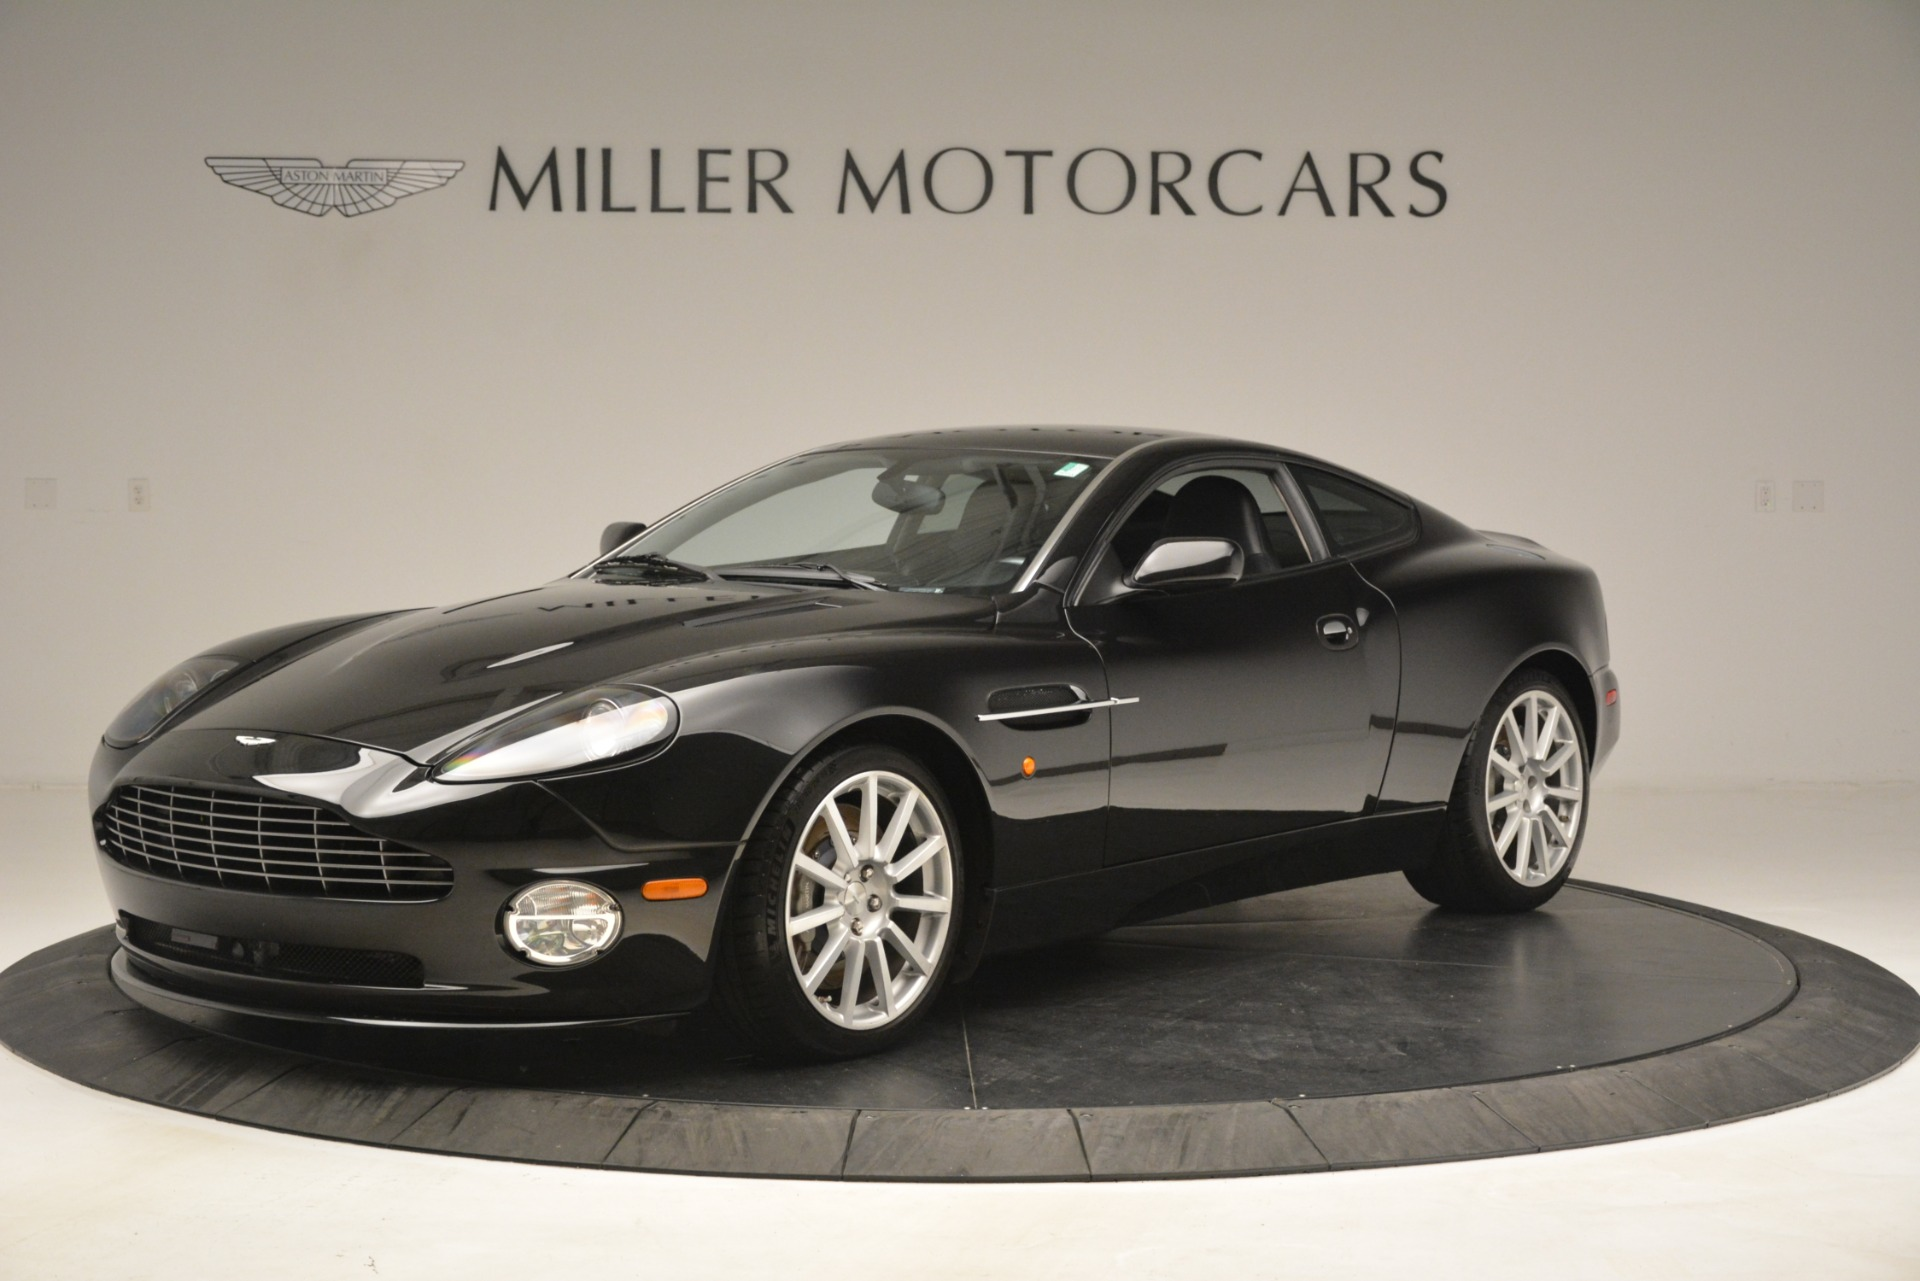 Used 2005 Aston Martin V12 Vanquish S Coupe for sale Sold at Maserati of Greenwich in Greenwich CT 06830 1